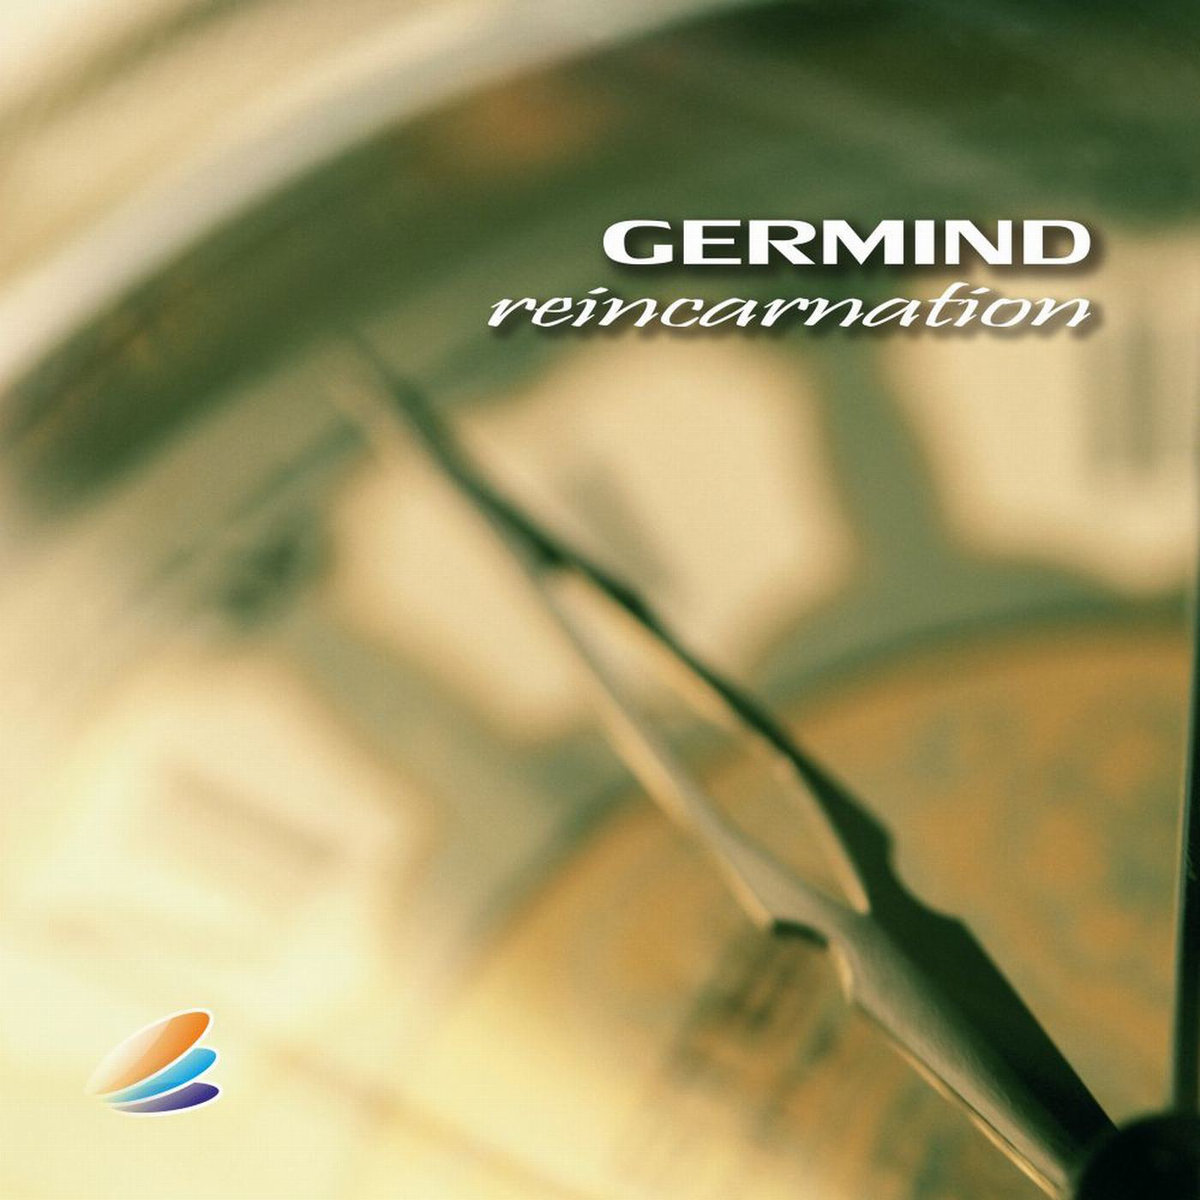 Germind - Reincarnation